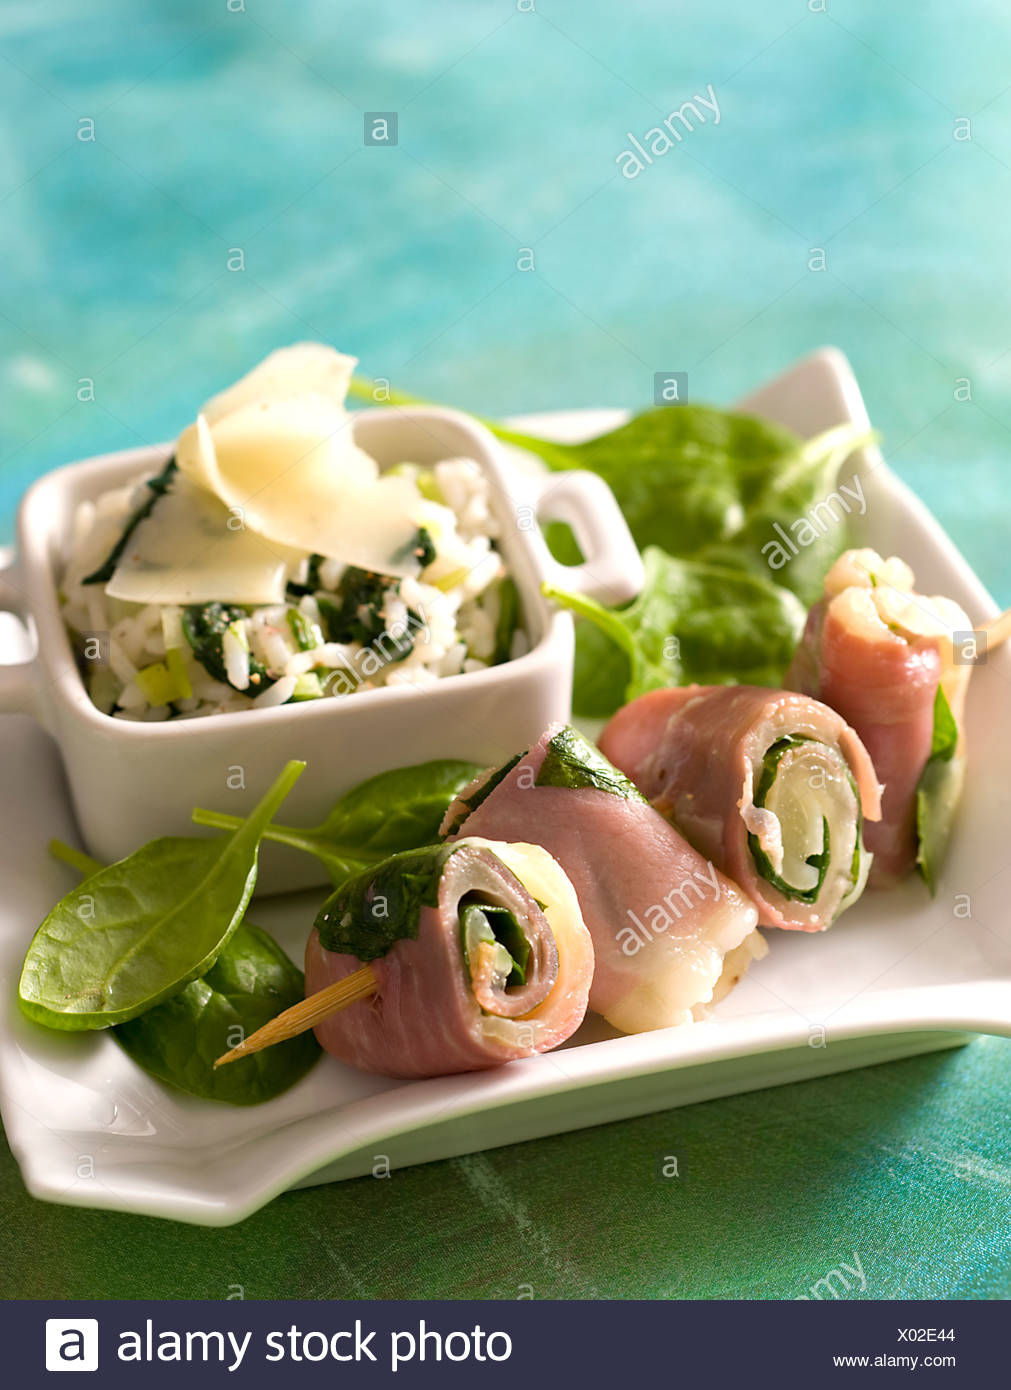 Cheese and Spinach Rolls - Stock Image